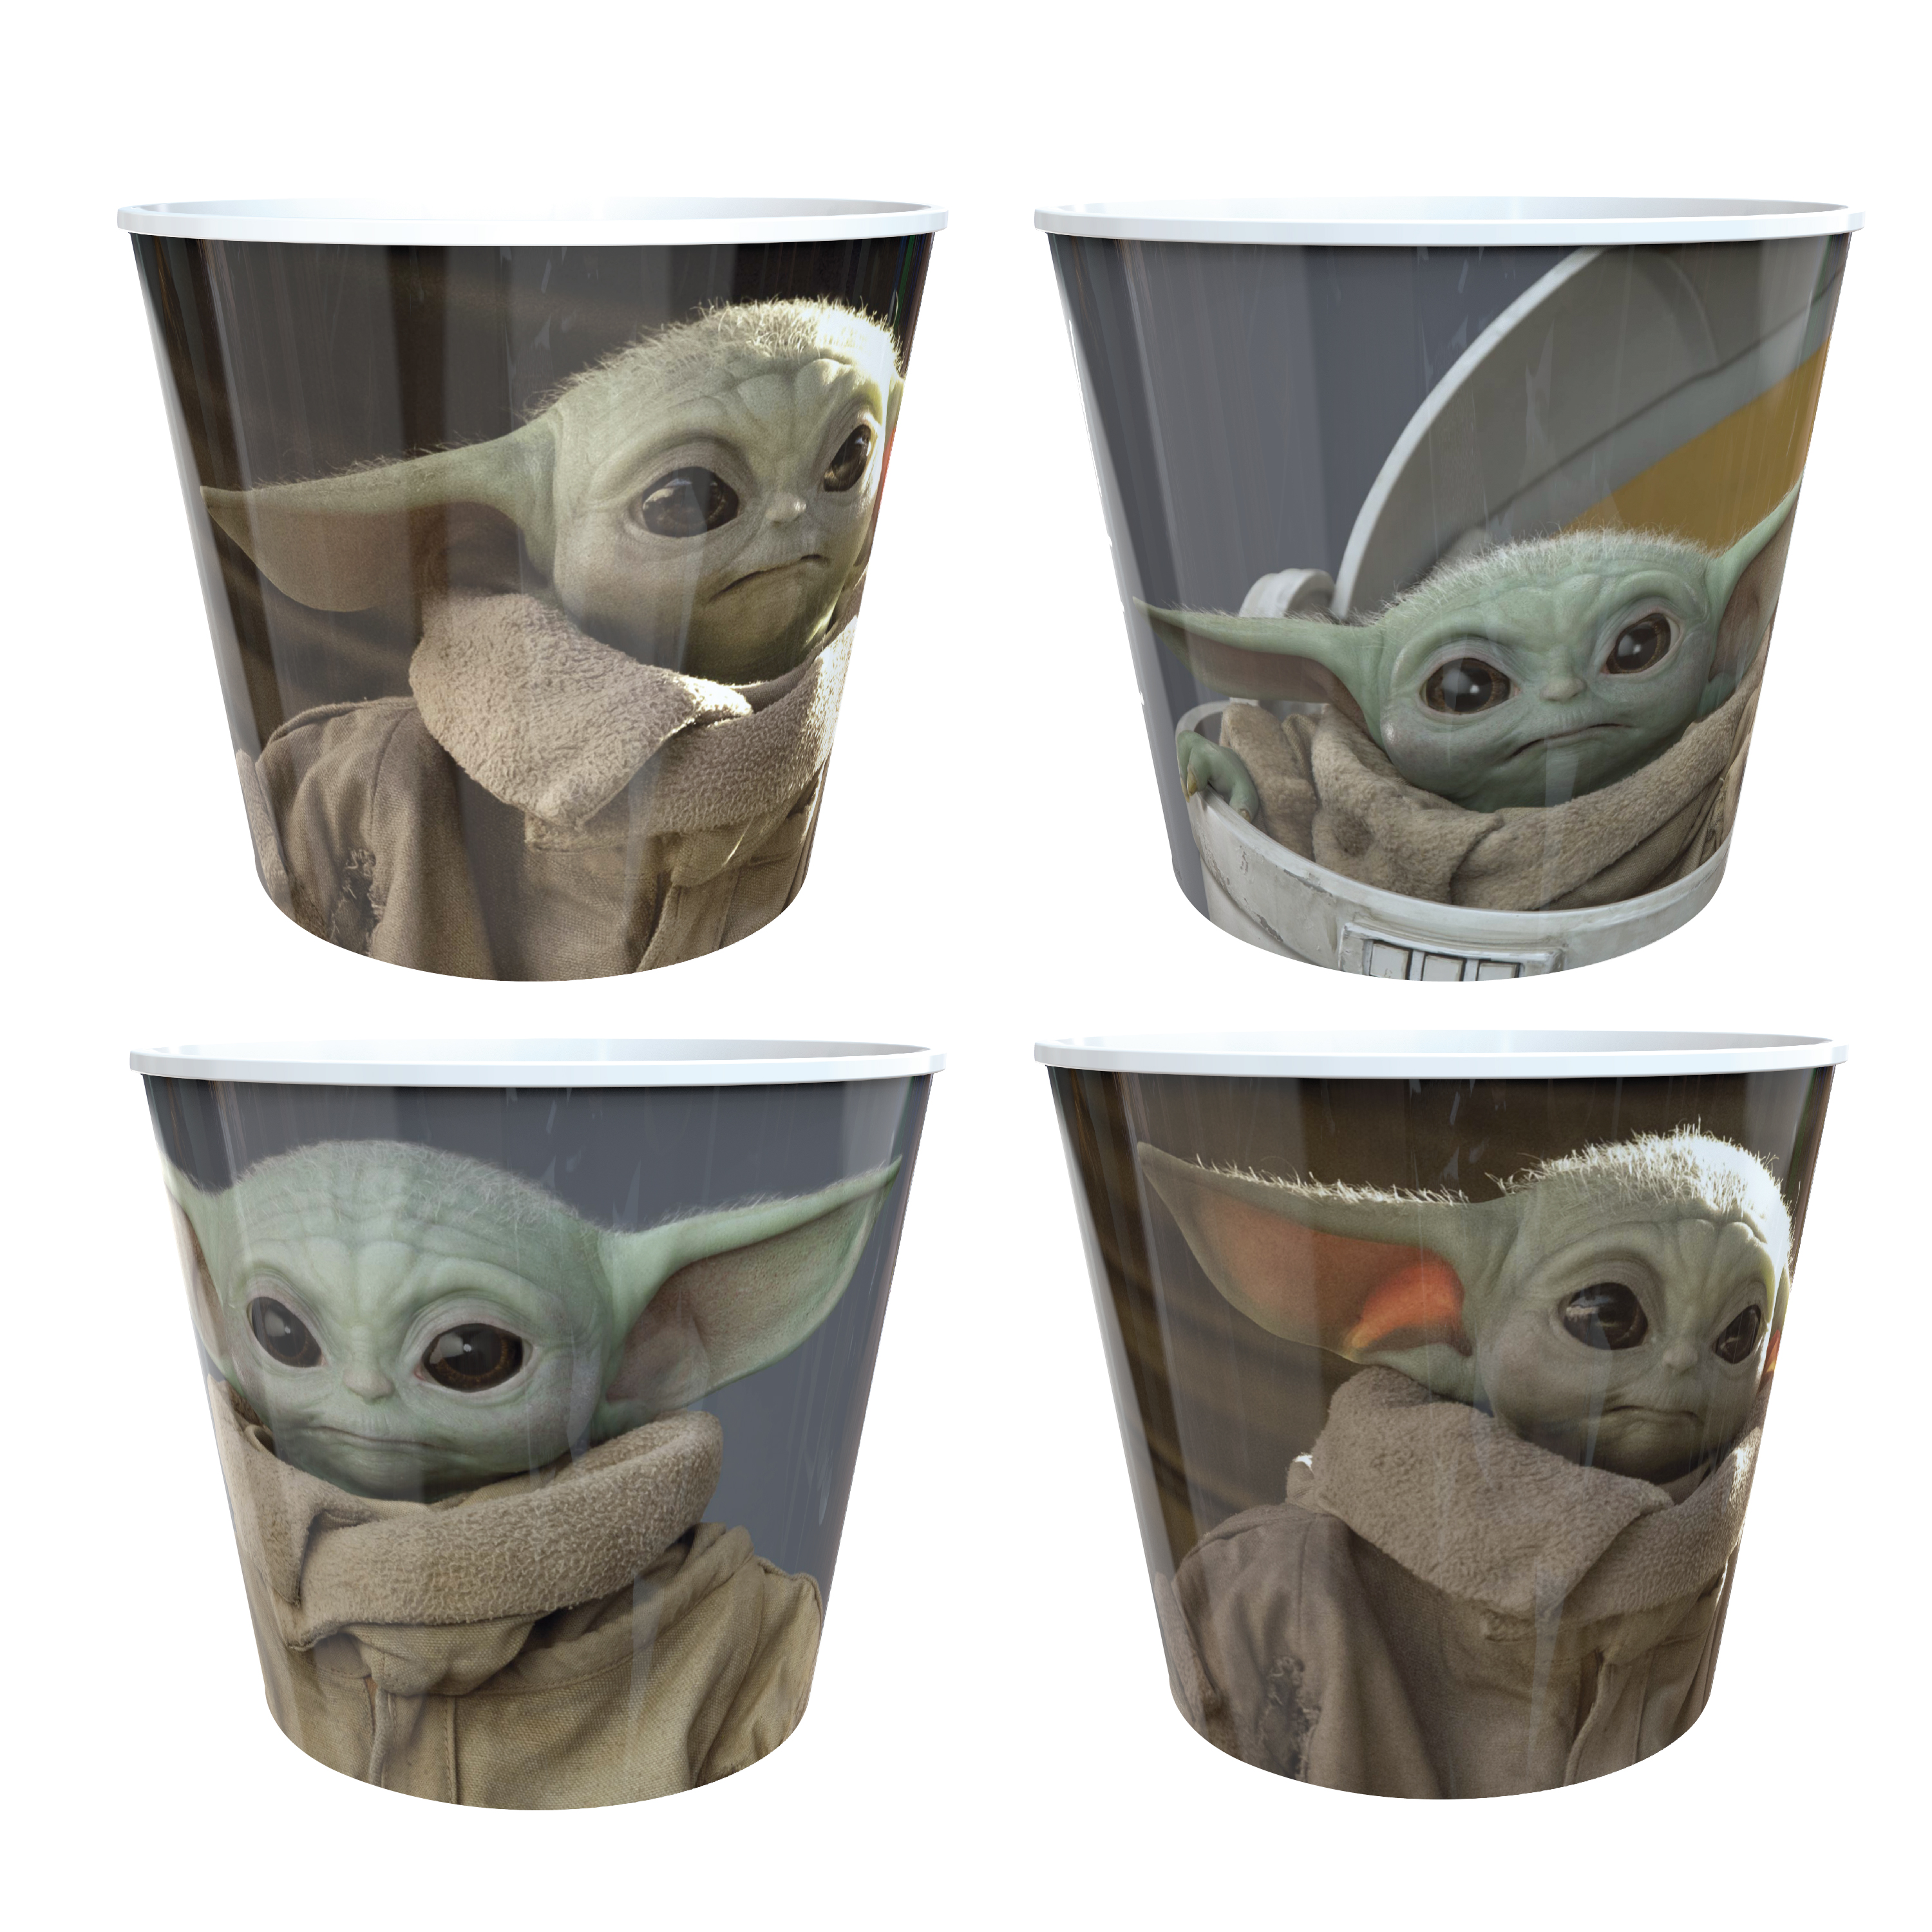 Star Wars: The Mandalorian Plastic Popcorn Container and Bowls, The Child (Baby Yoda), 5-piece set slideshow image 7